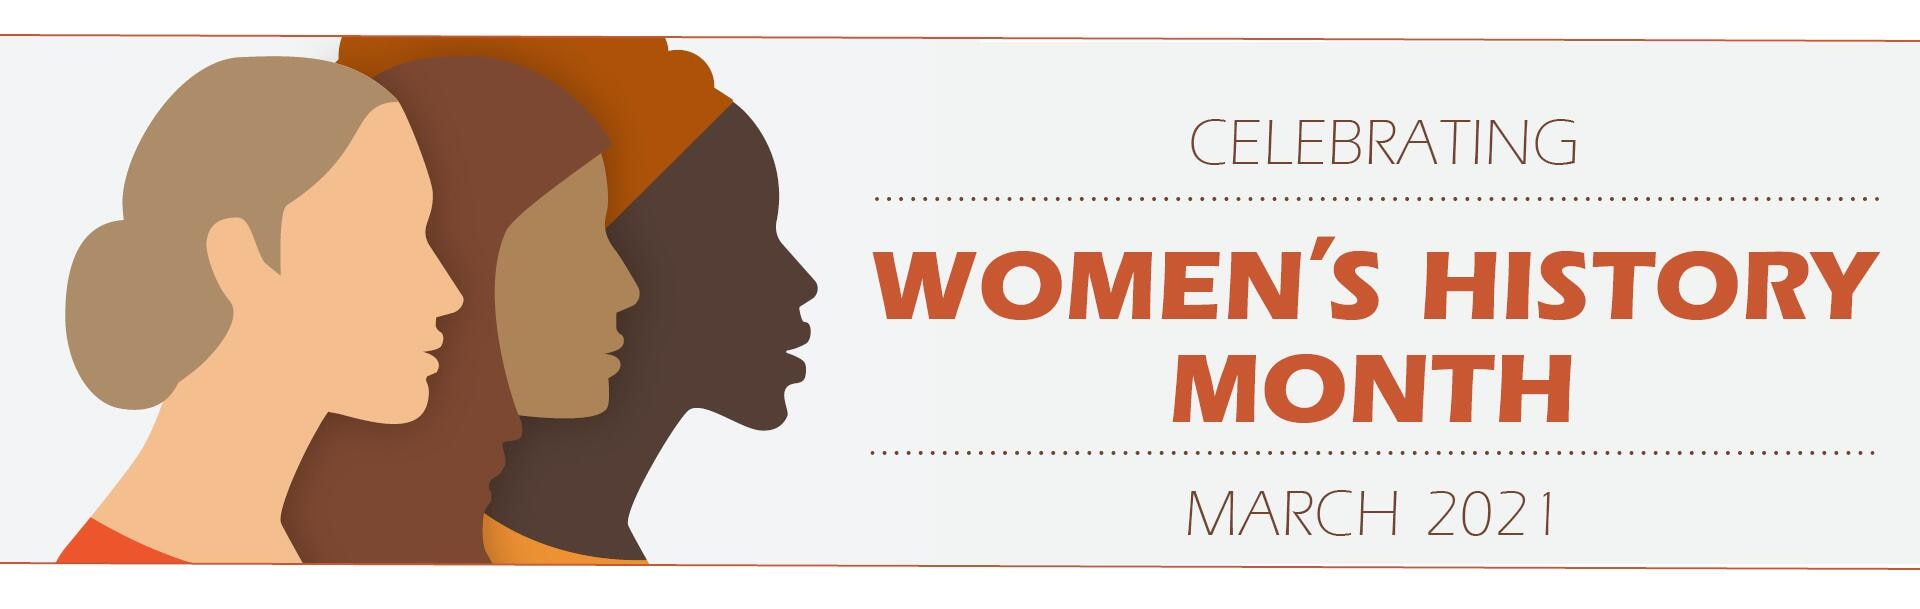 A graphic for women's history month